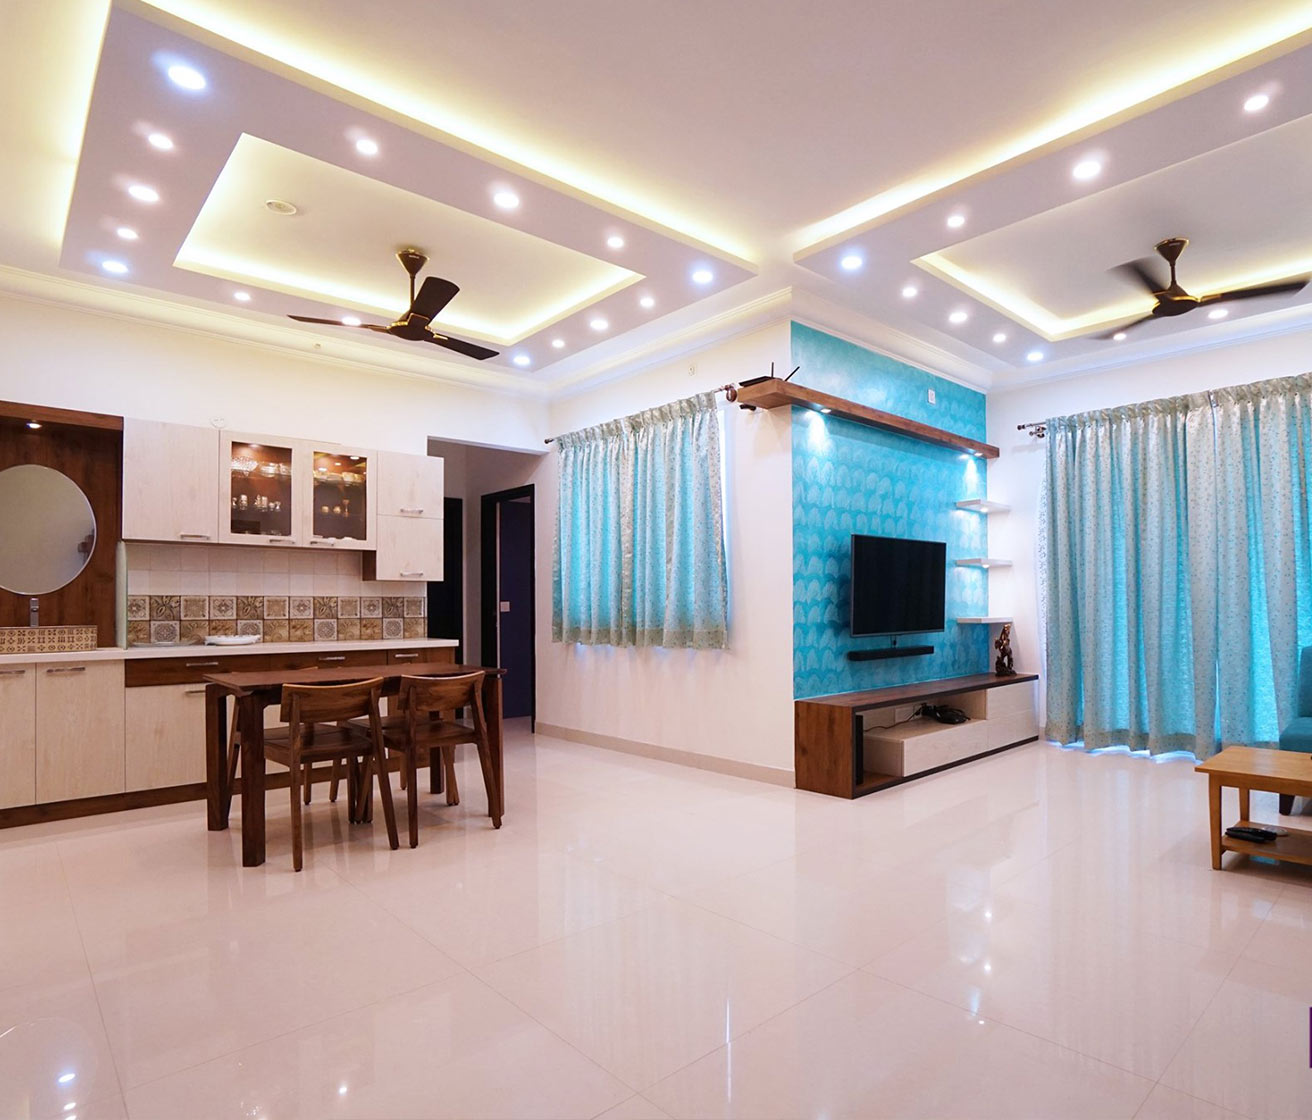 Why should you hire an interior designer?